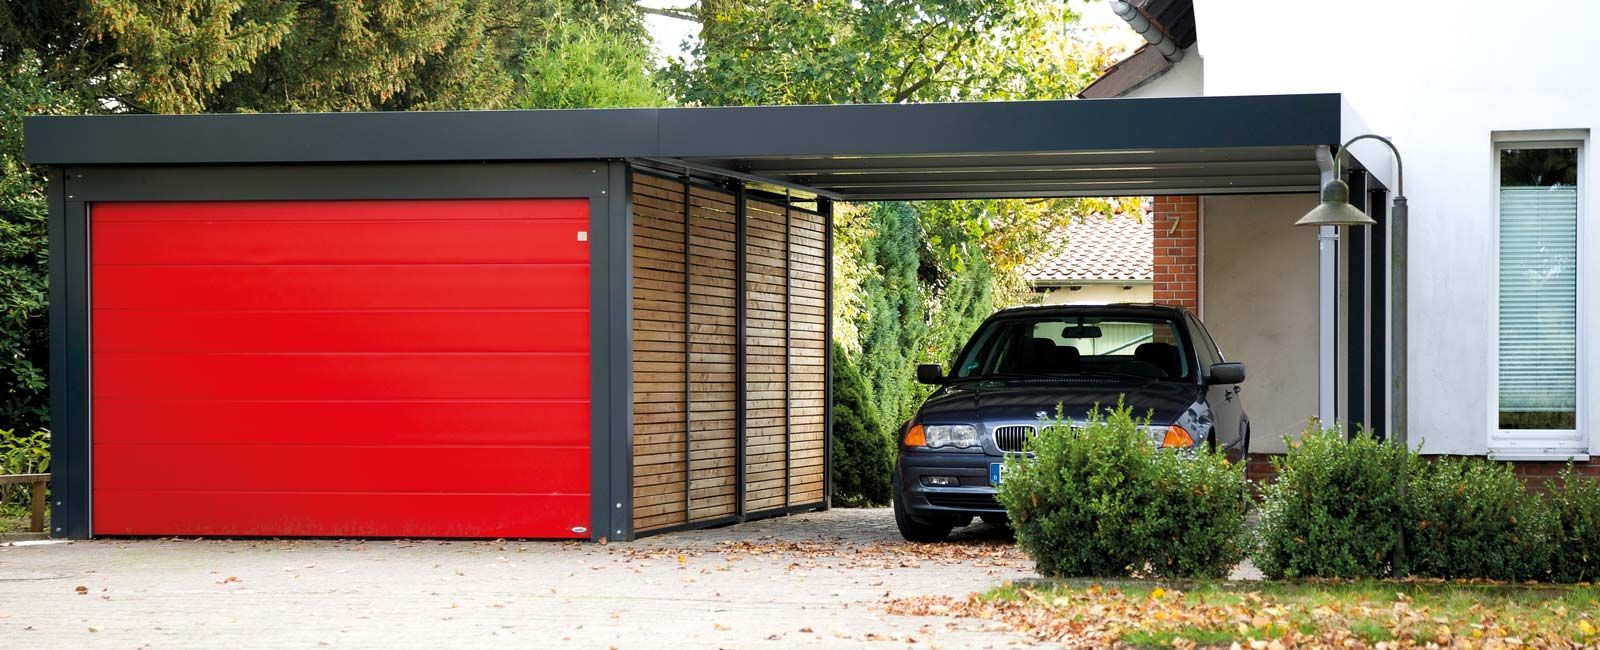 carport mit sektionaltor von siebau carport einhausungen eingangs berdachung m lltonnenbox. Black Bedroom Furniture Sets. Home Design Ideas